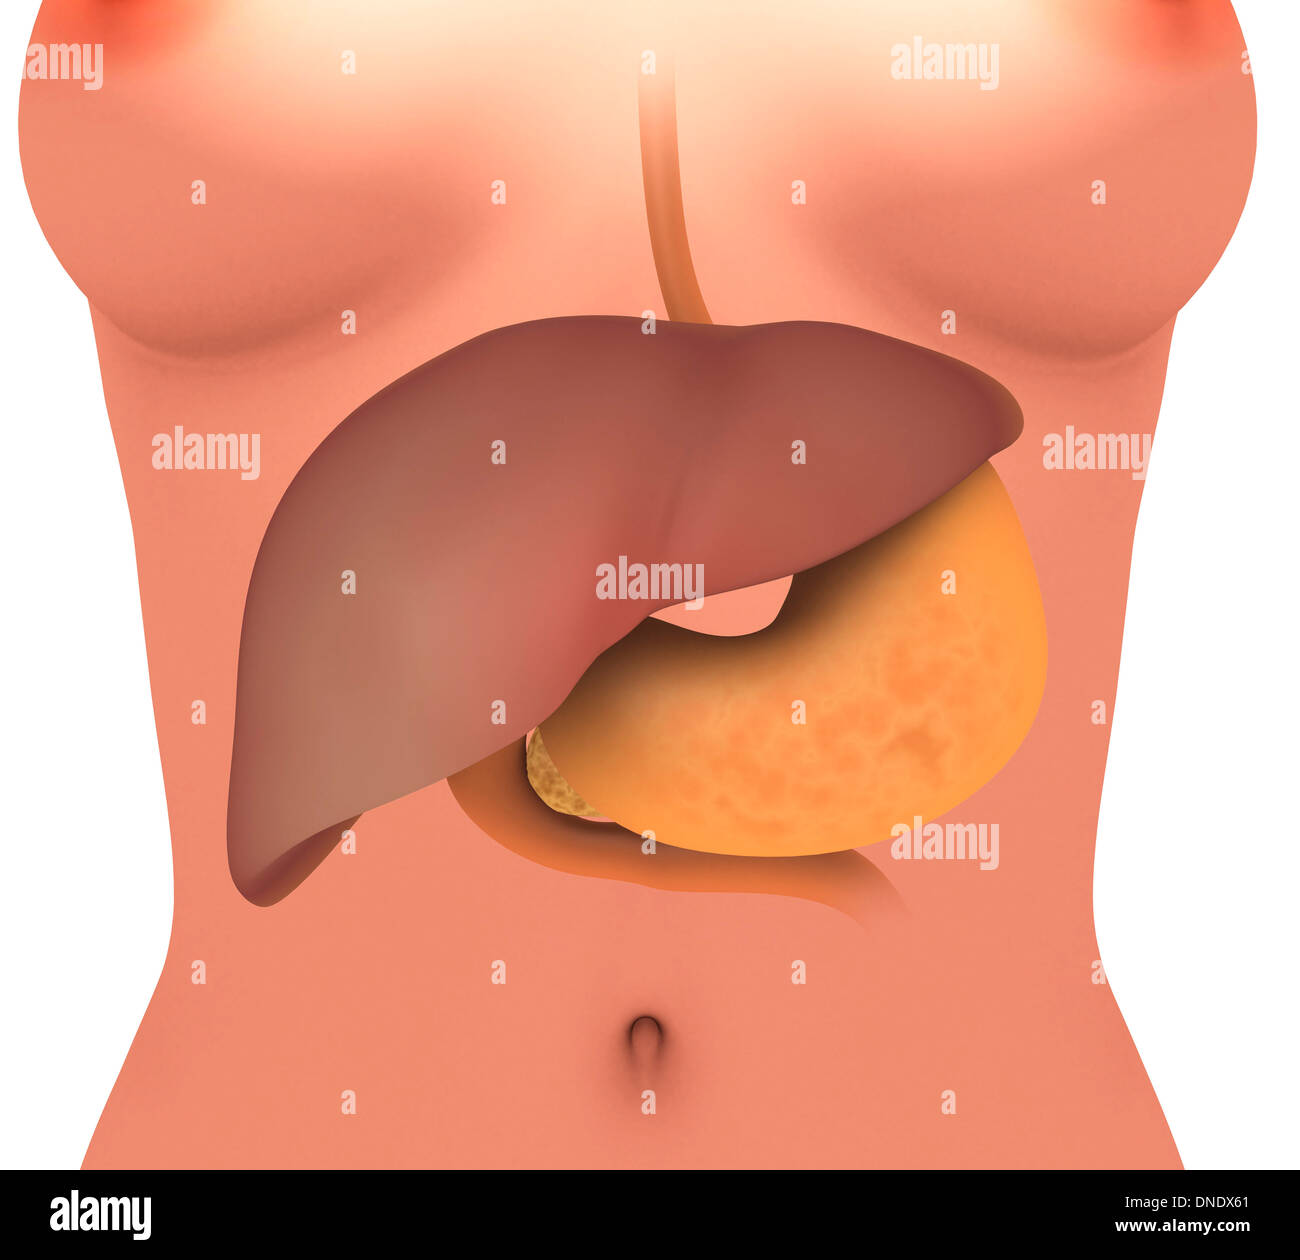 Digestive System Anterior View Stock Photos Digestive System